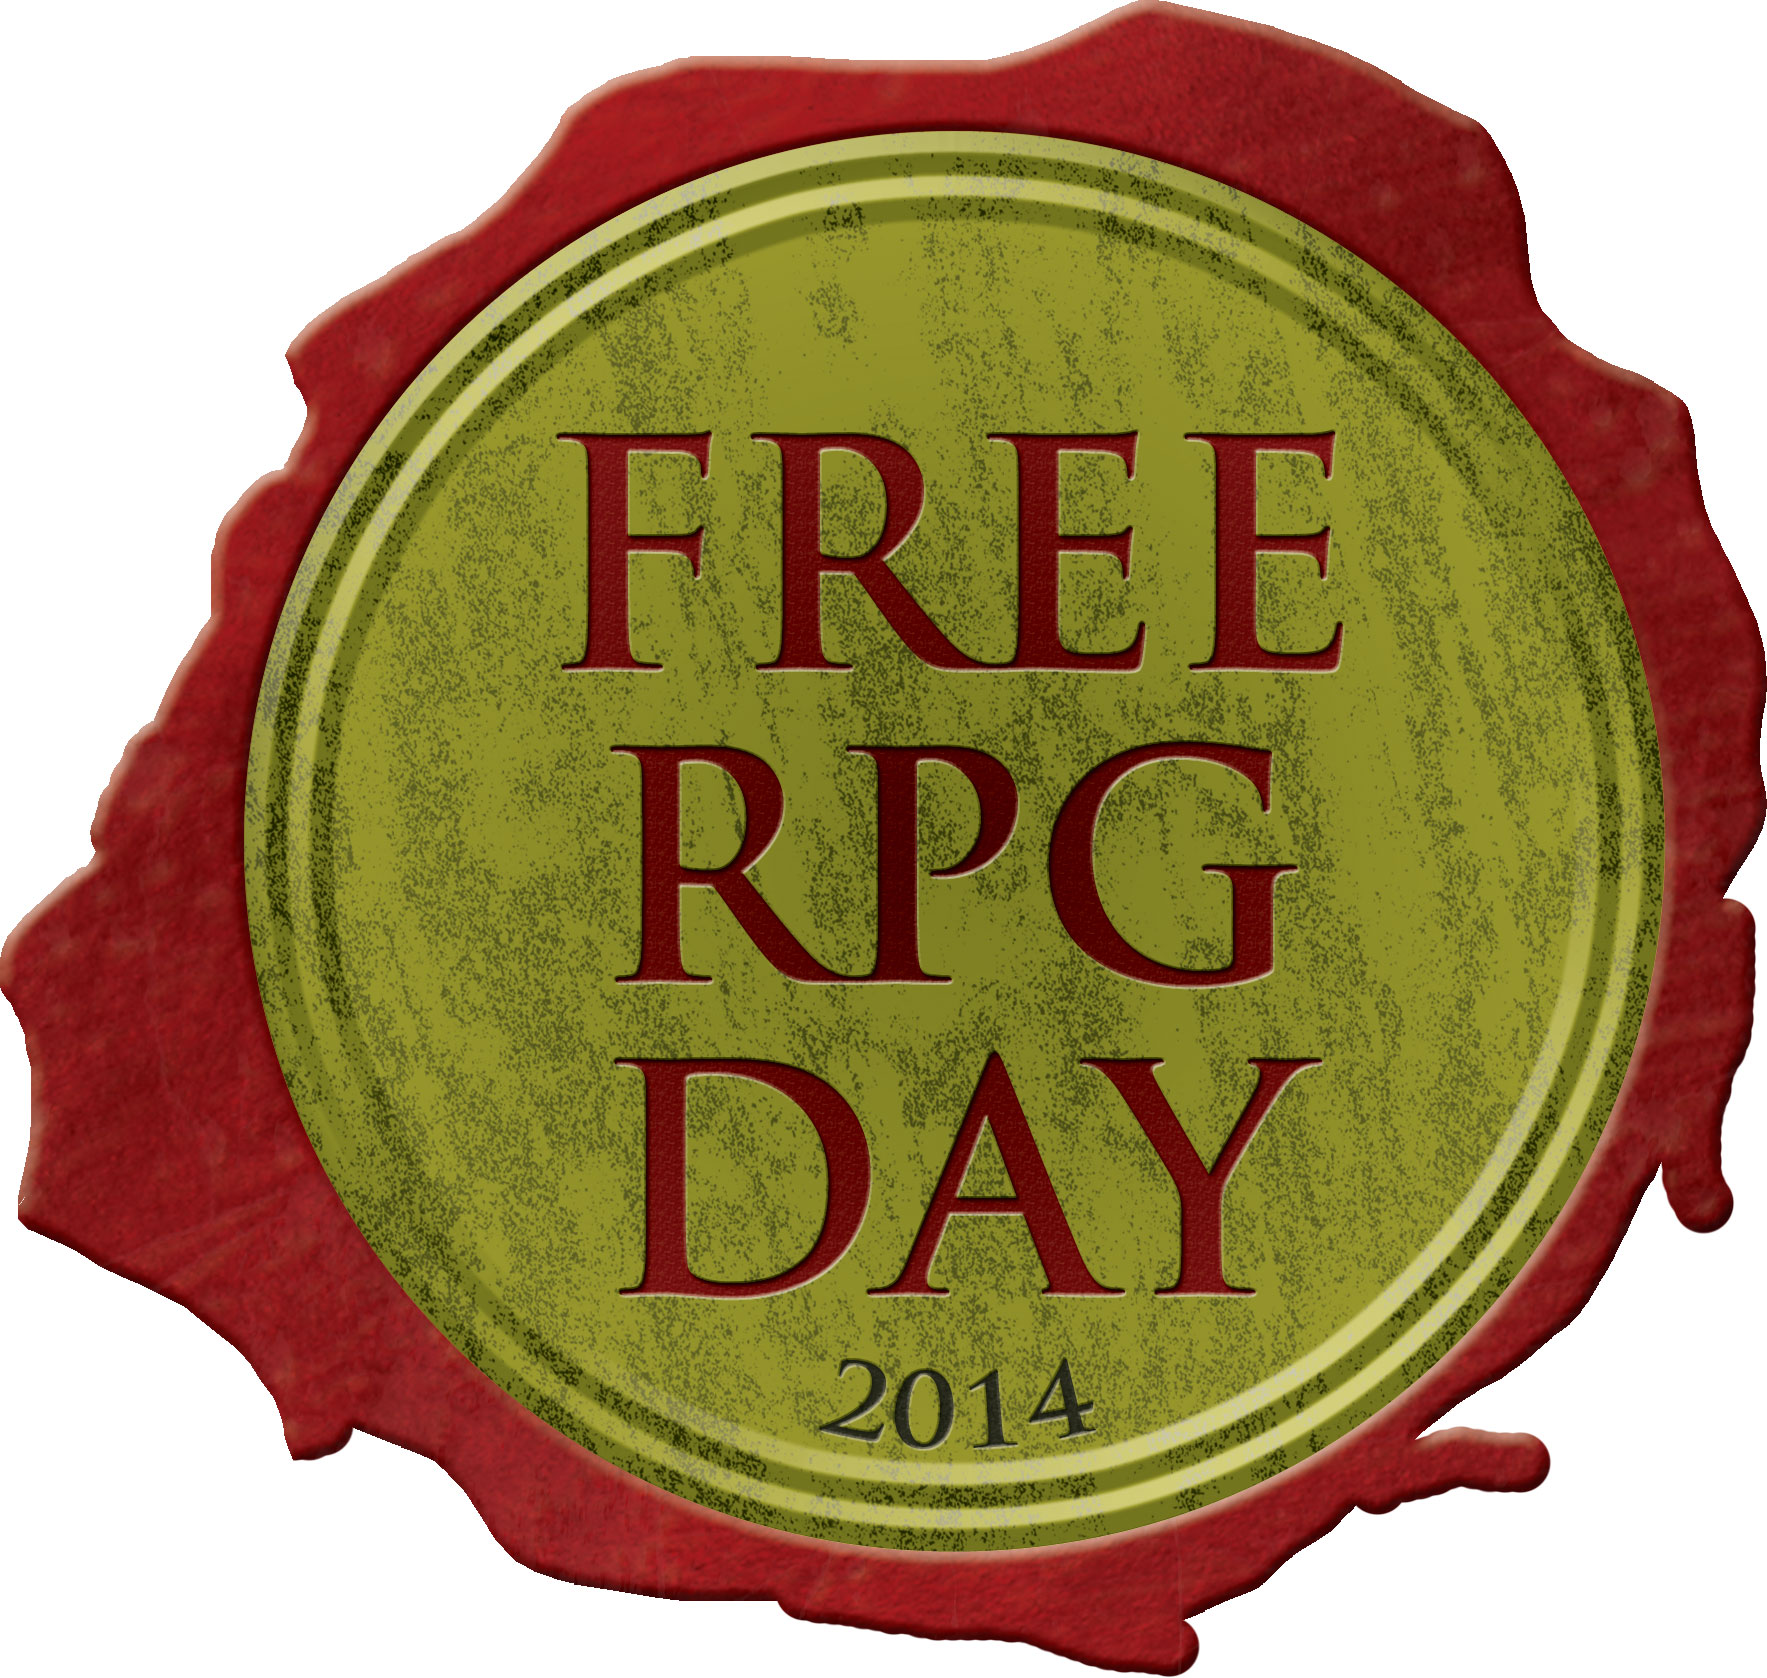 Free RPG Day 2014 (Copyright/Image: Impressions)